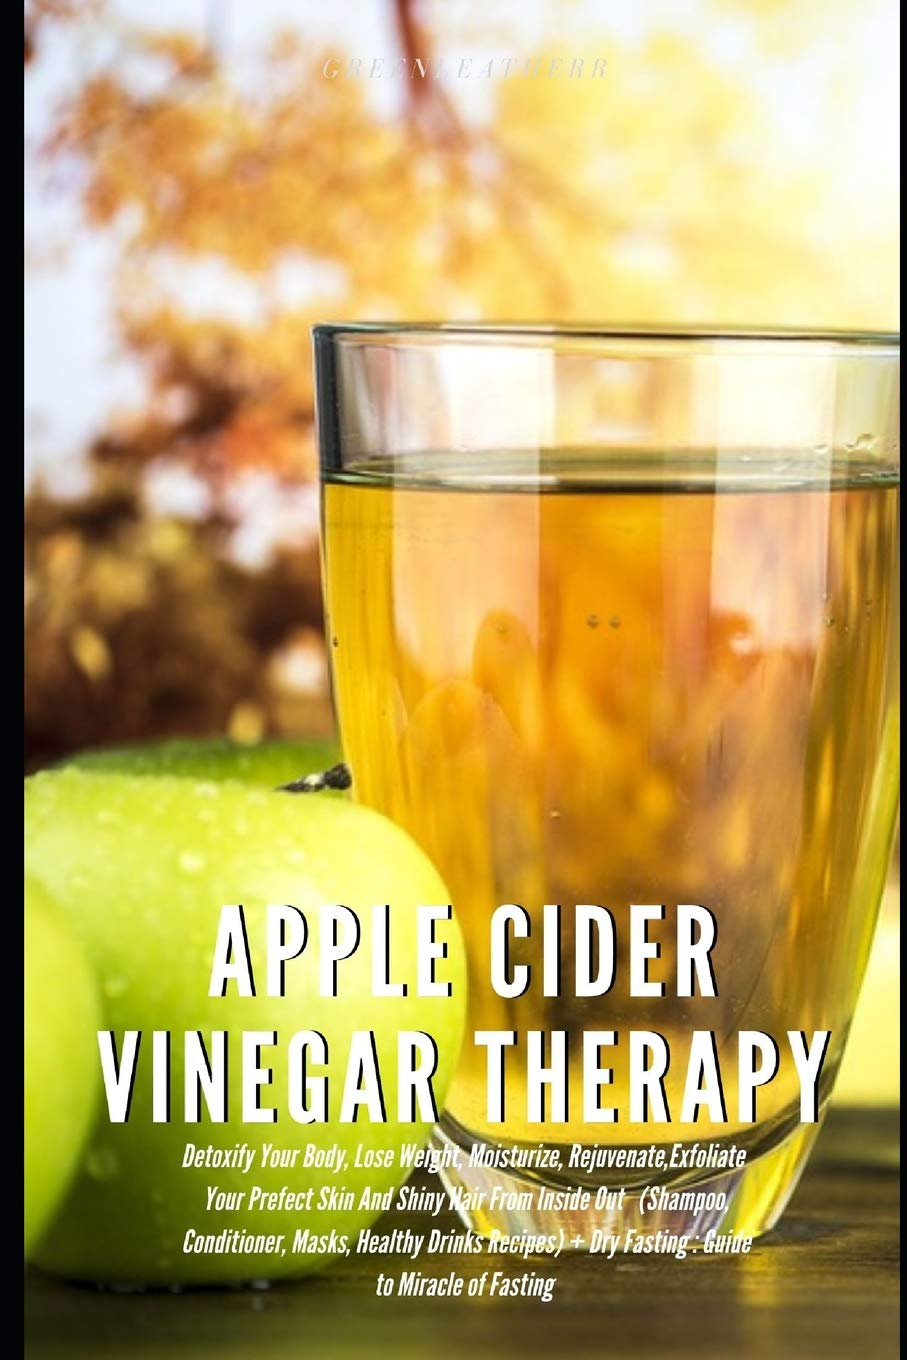 Apple Cider Vinegar Therapy Conditioner product image